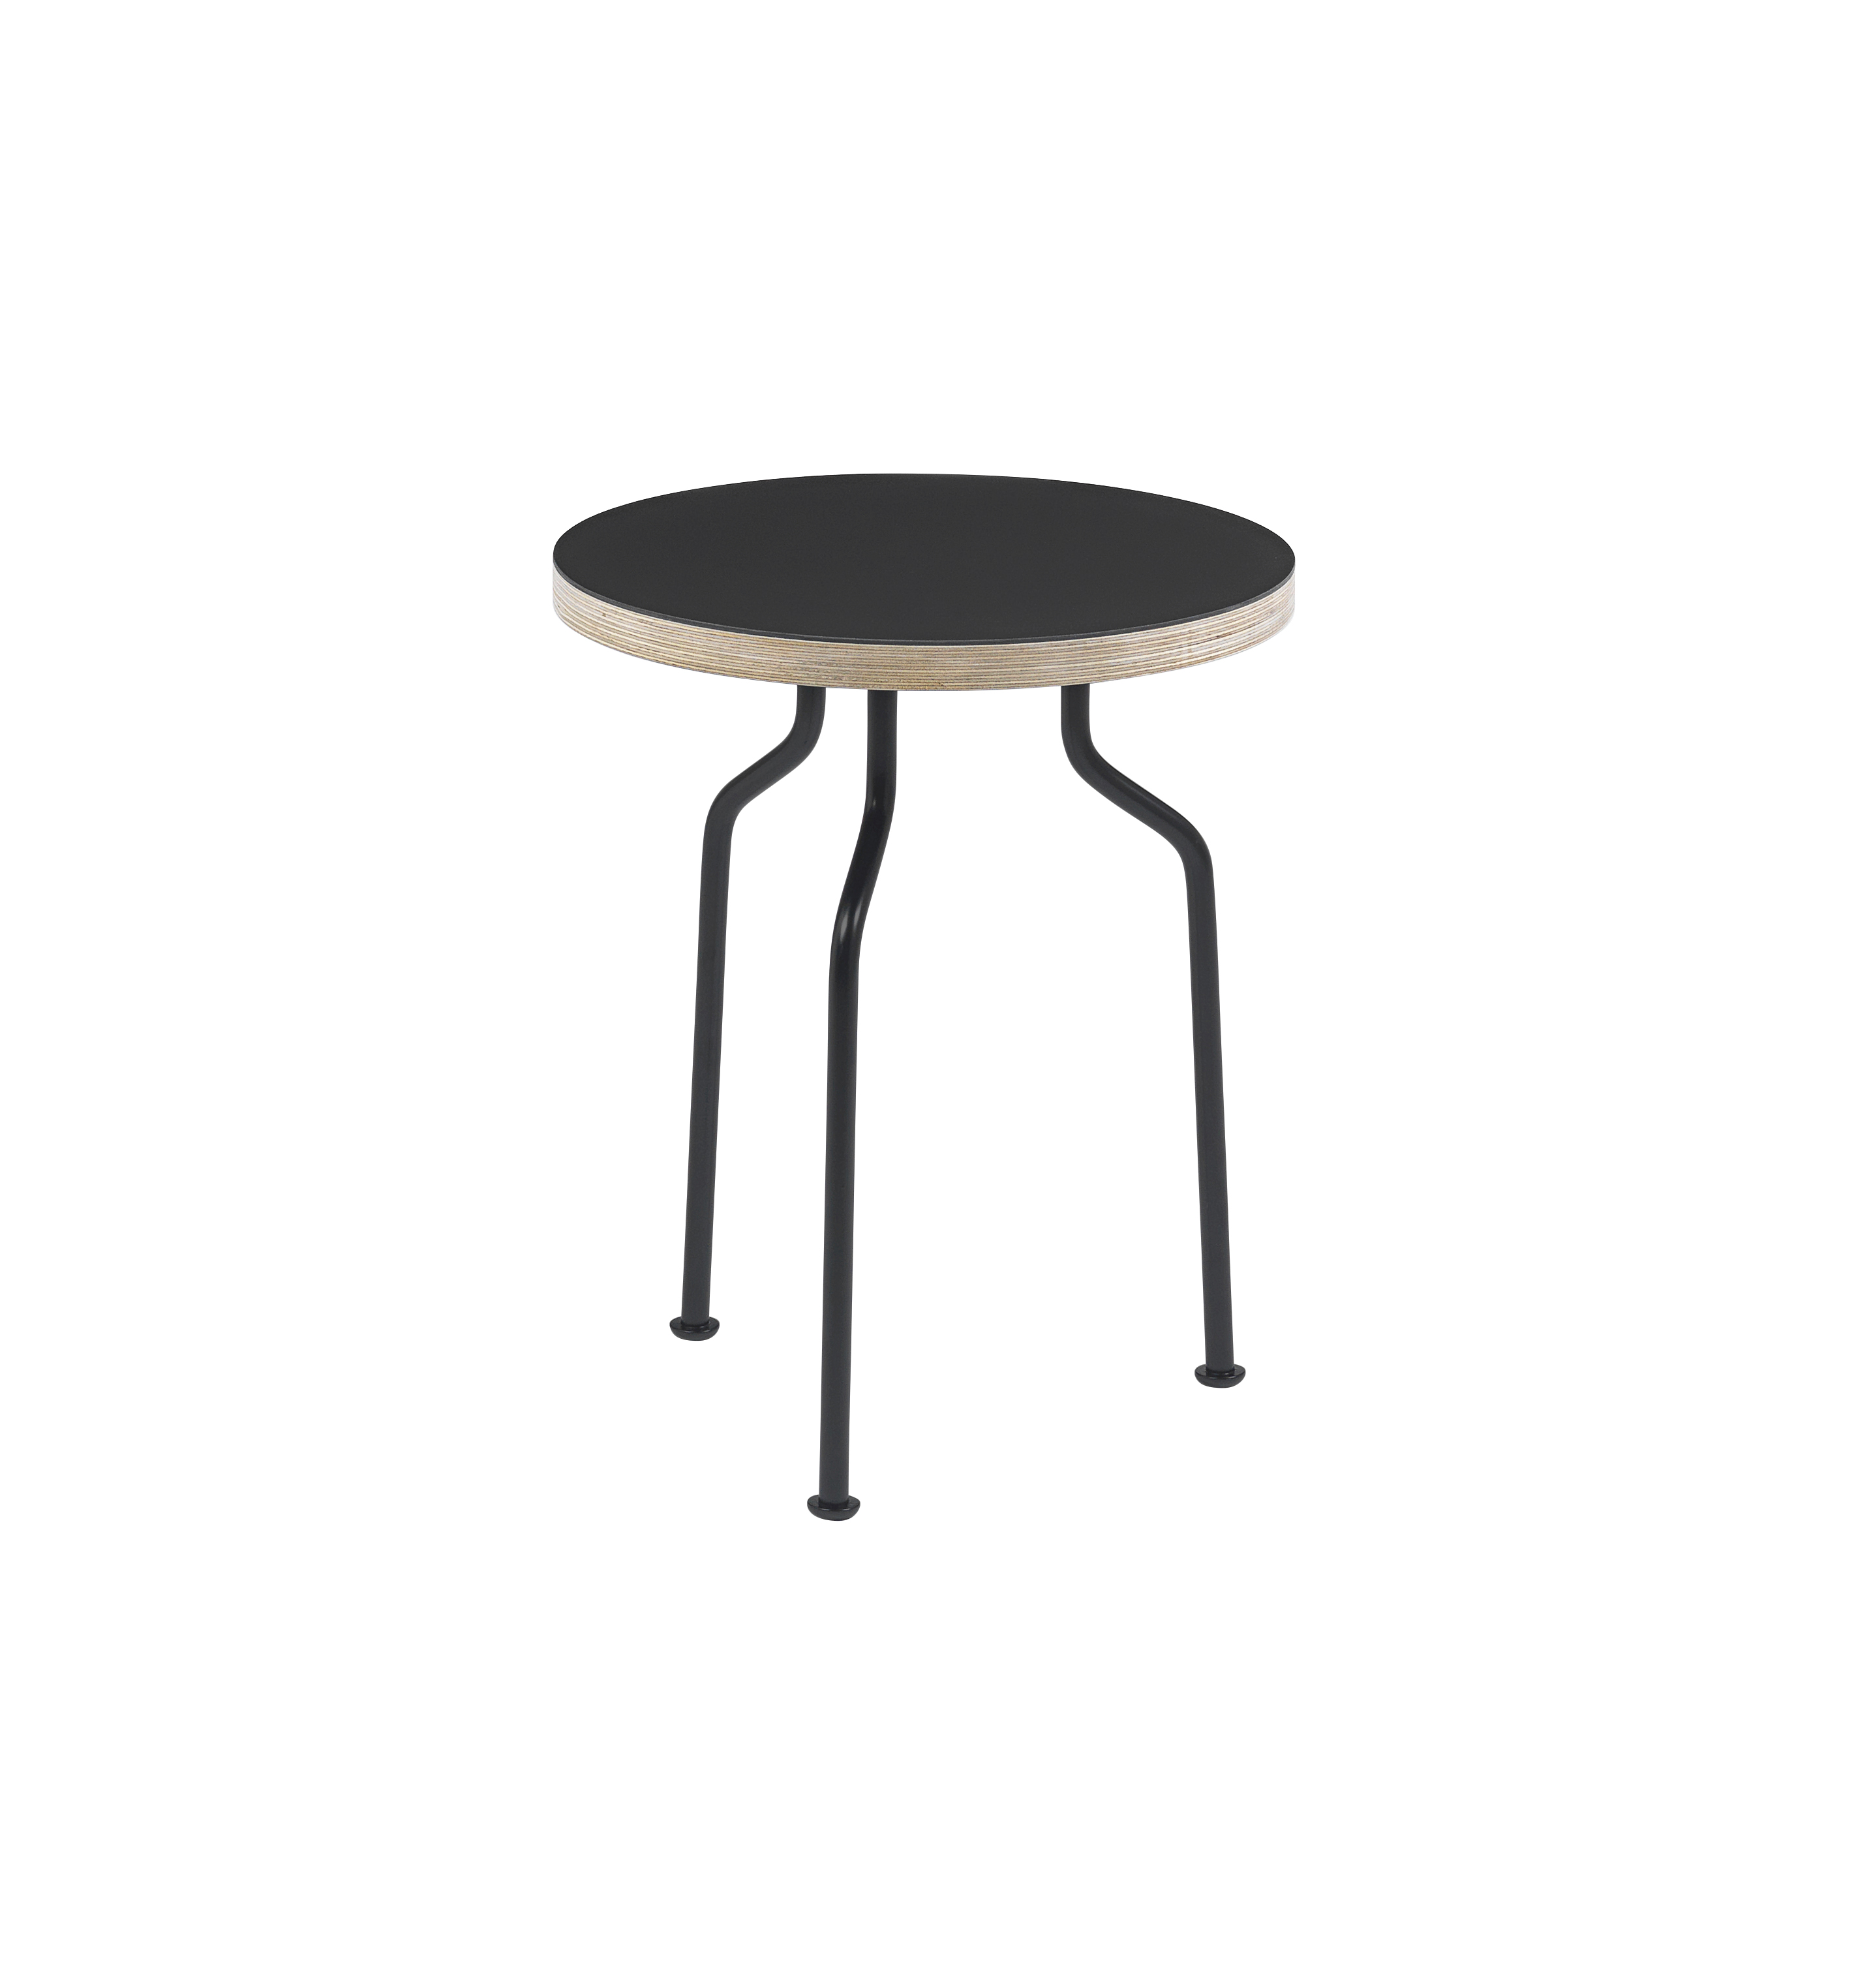 Terrific Gubi Modern Line Side Table Design Greta M Grossman 1949 Gmtry Best Dining Table And Chair Ideas Images Gmtryco